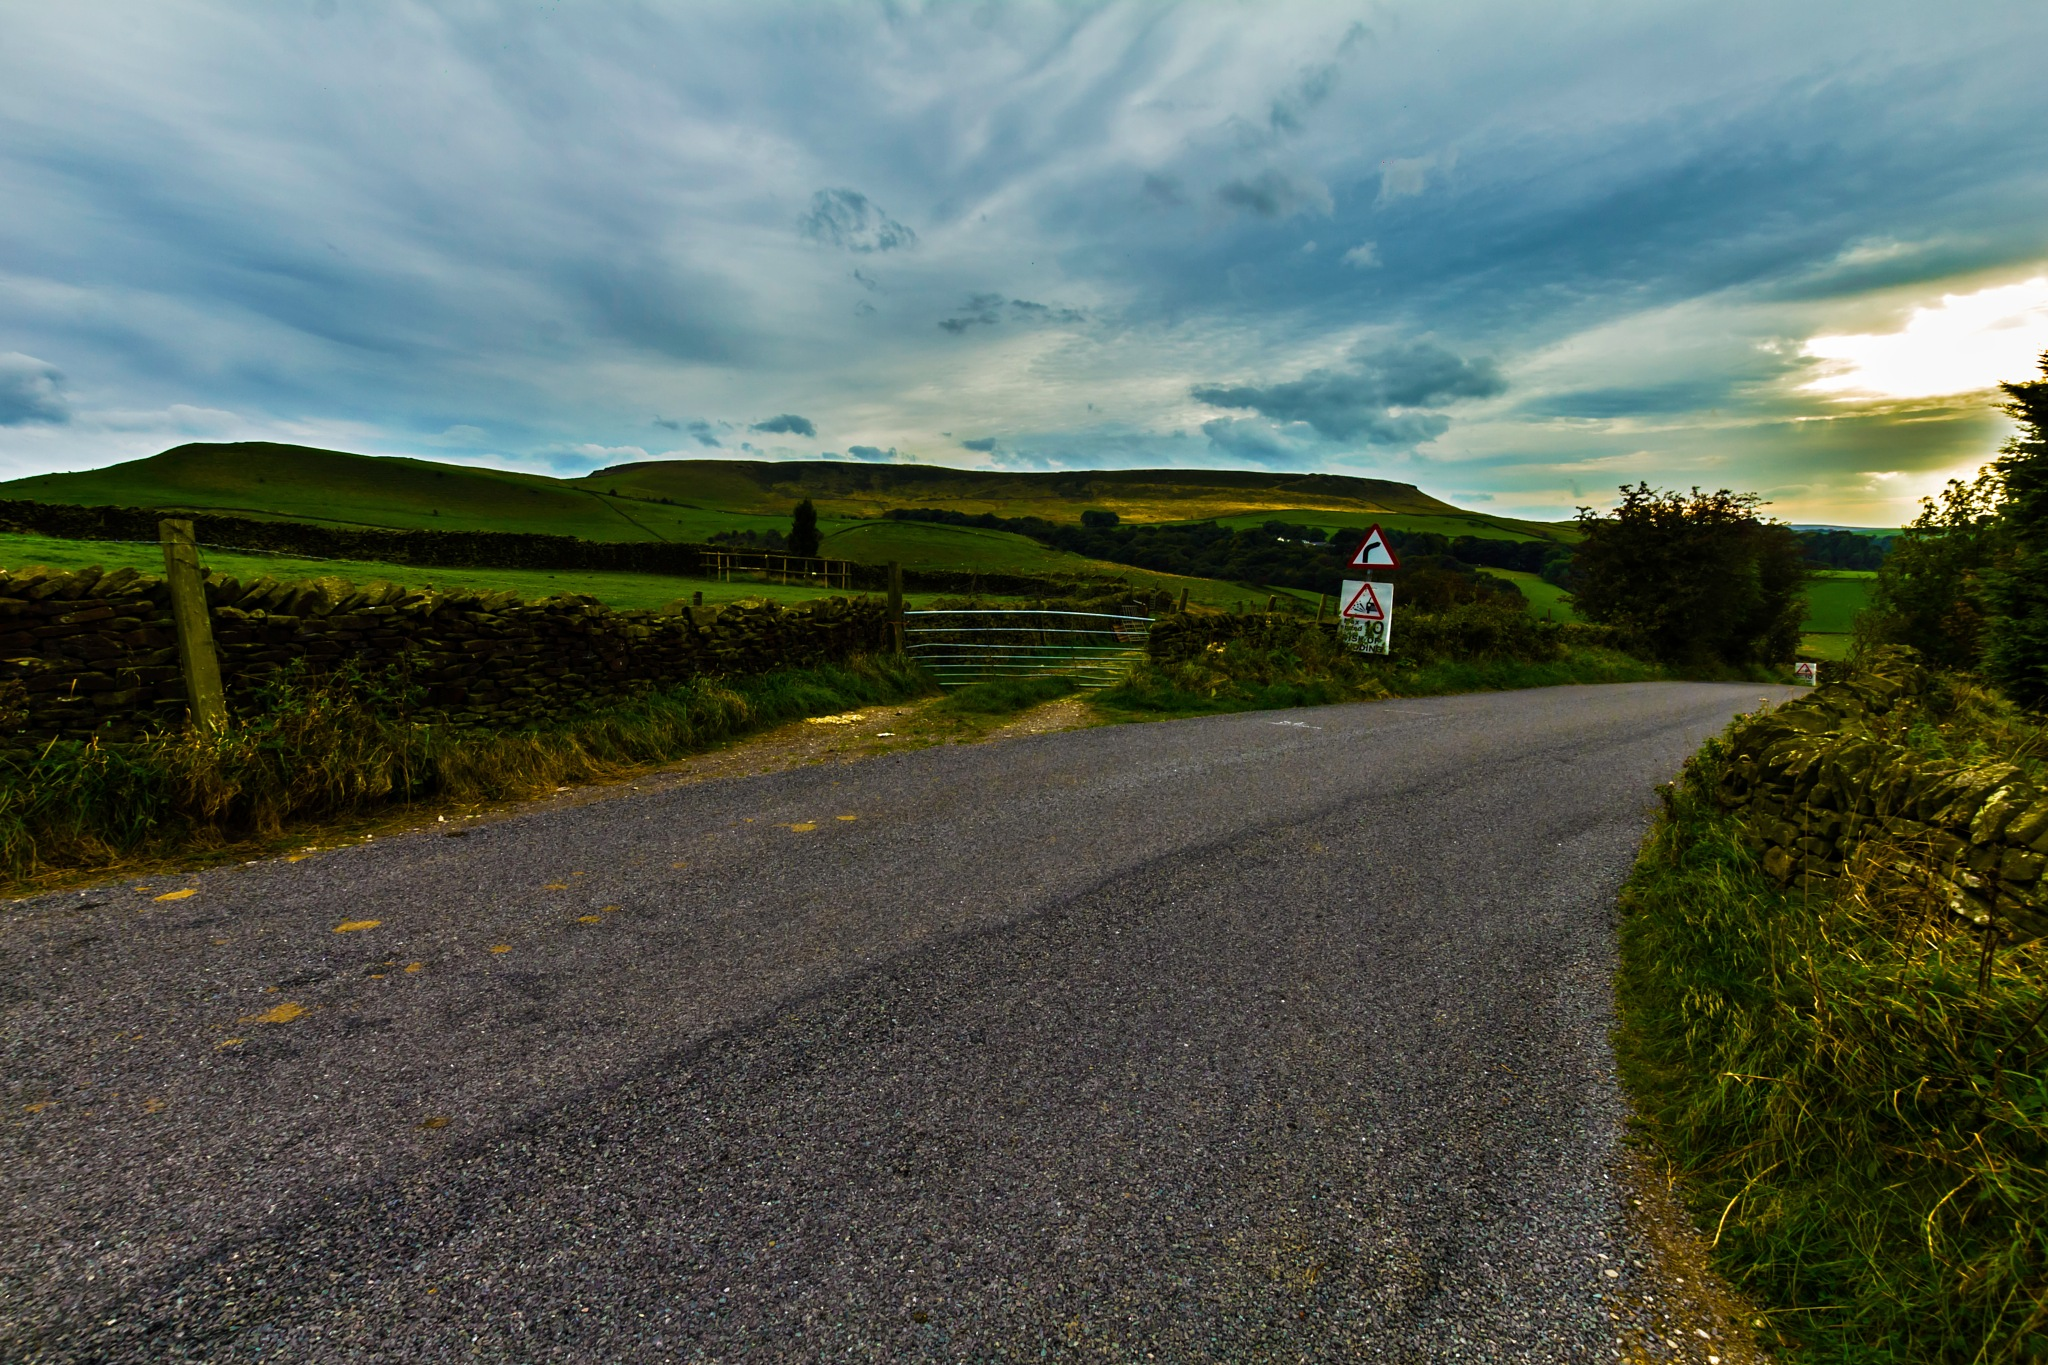 Curve in the Road by Michelle Connor